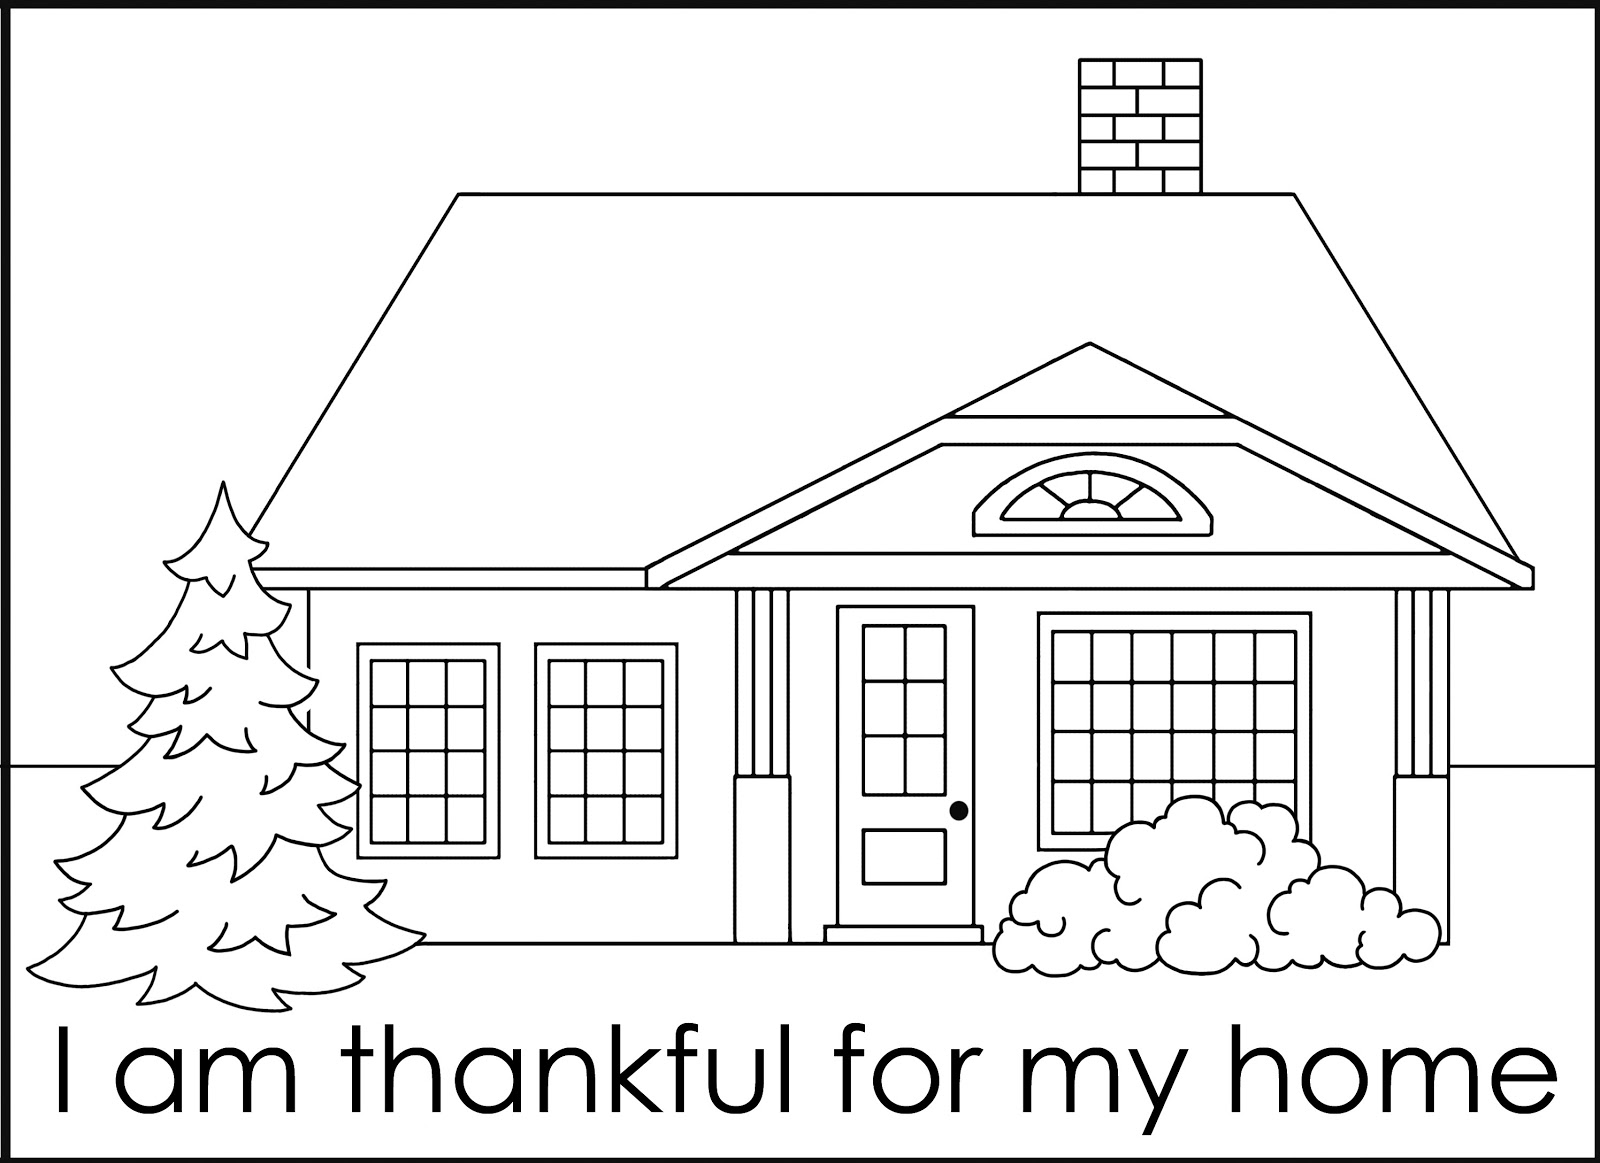 home coloring pages green jello with carrots fhe idea for thanksgiving home coloring pages